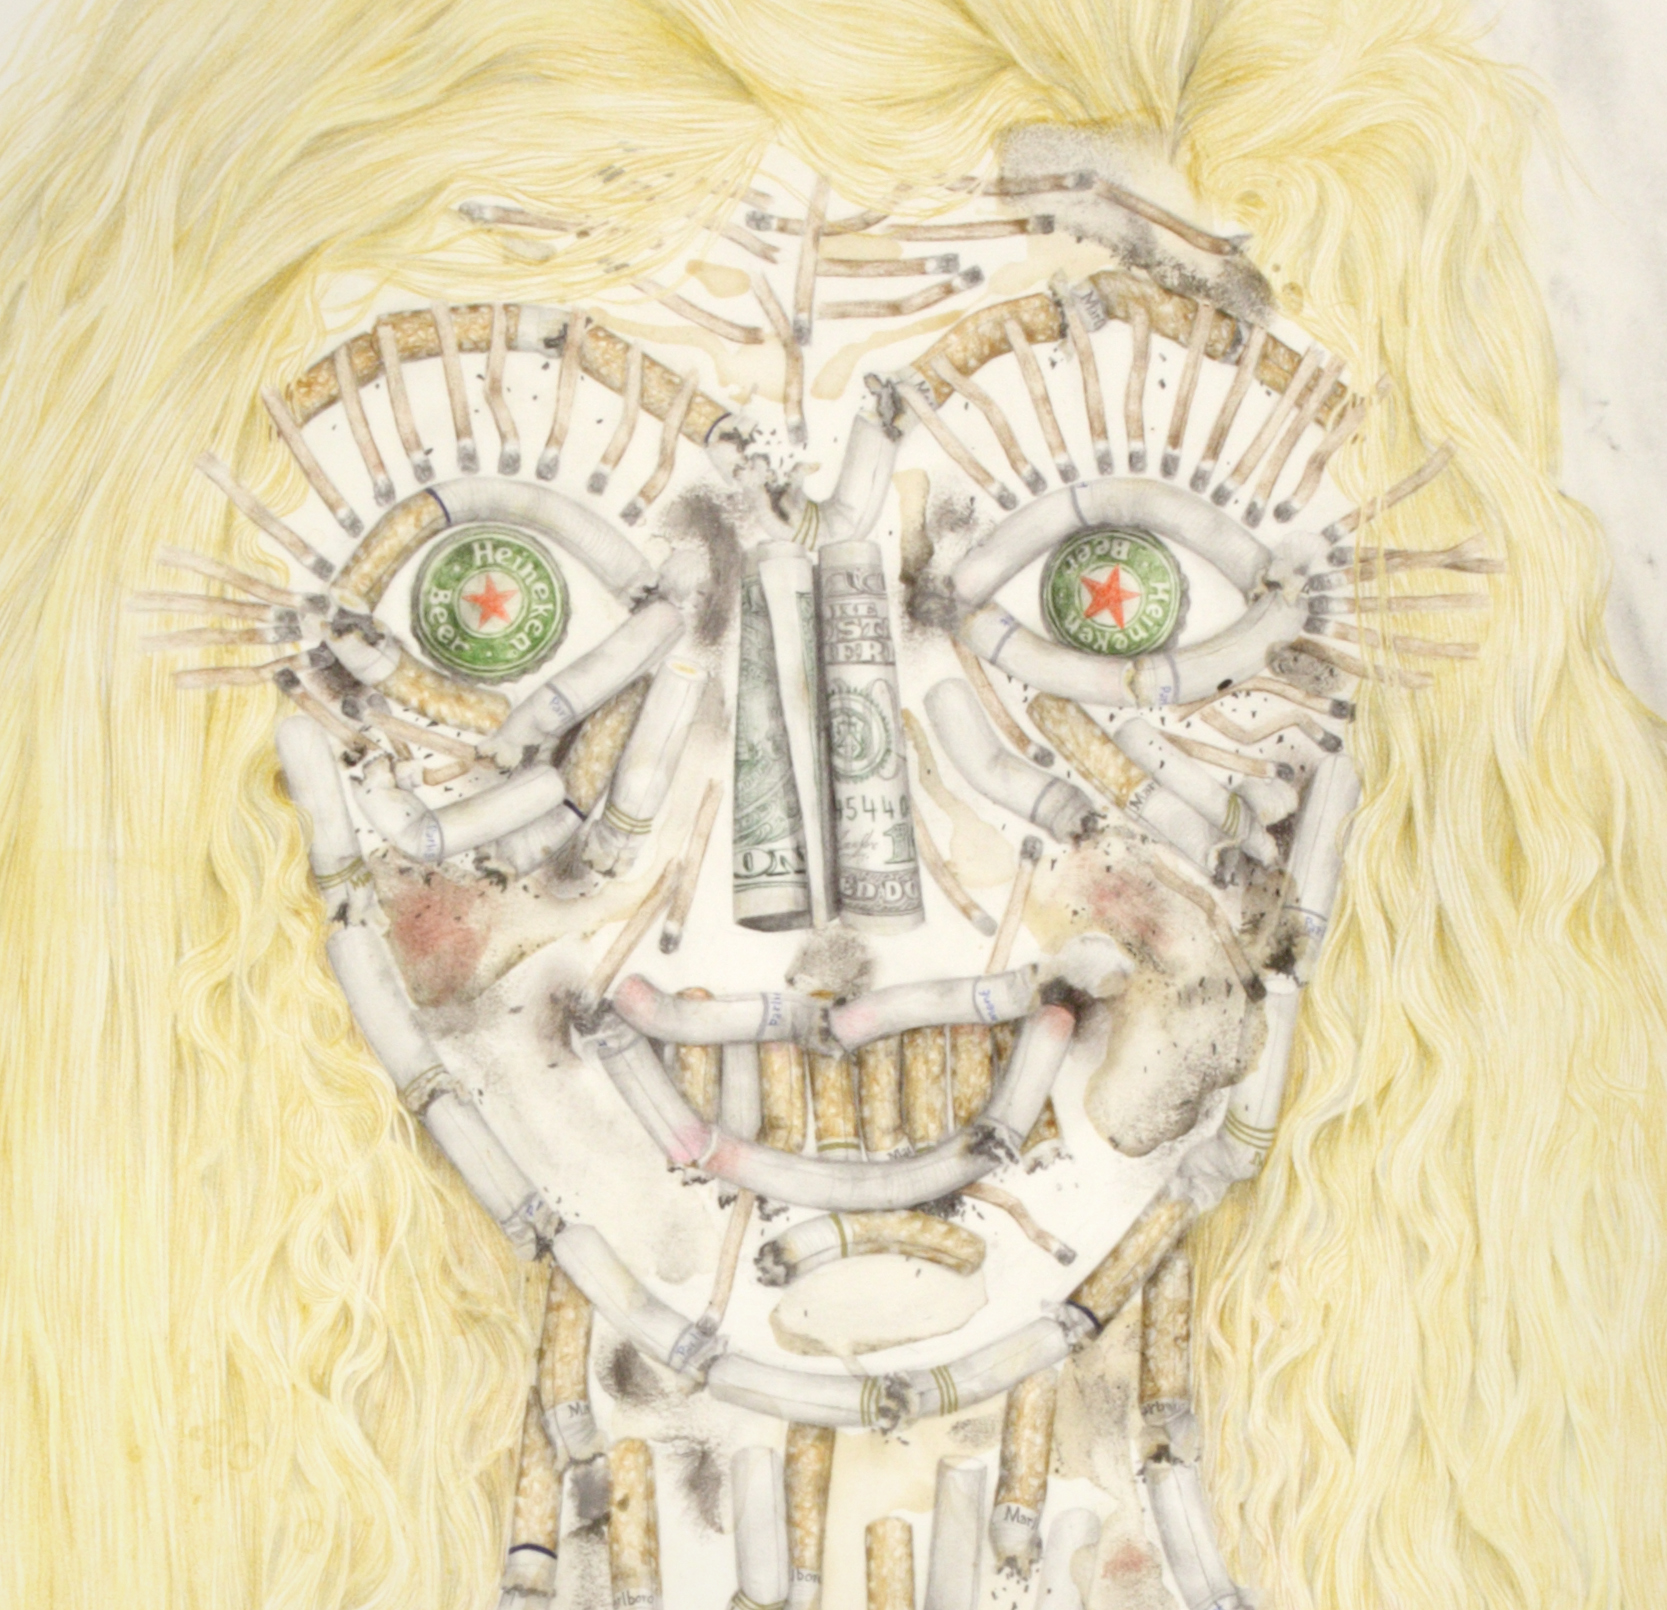 aurel_schmidt_self_portrait_with_various_adictions_and_fears_of_ageing_detail.jpg